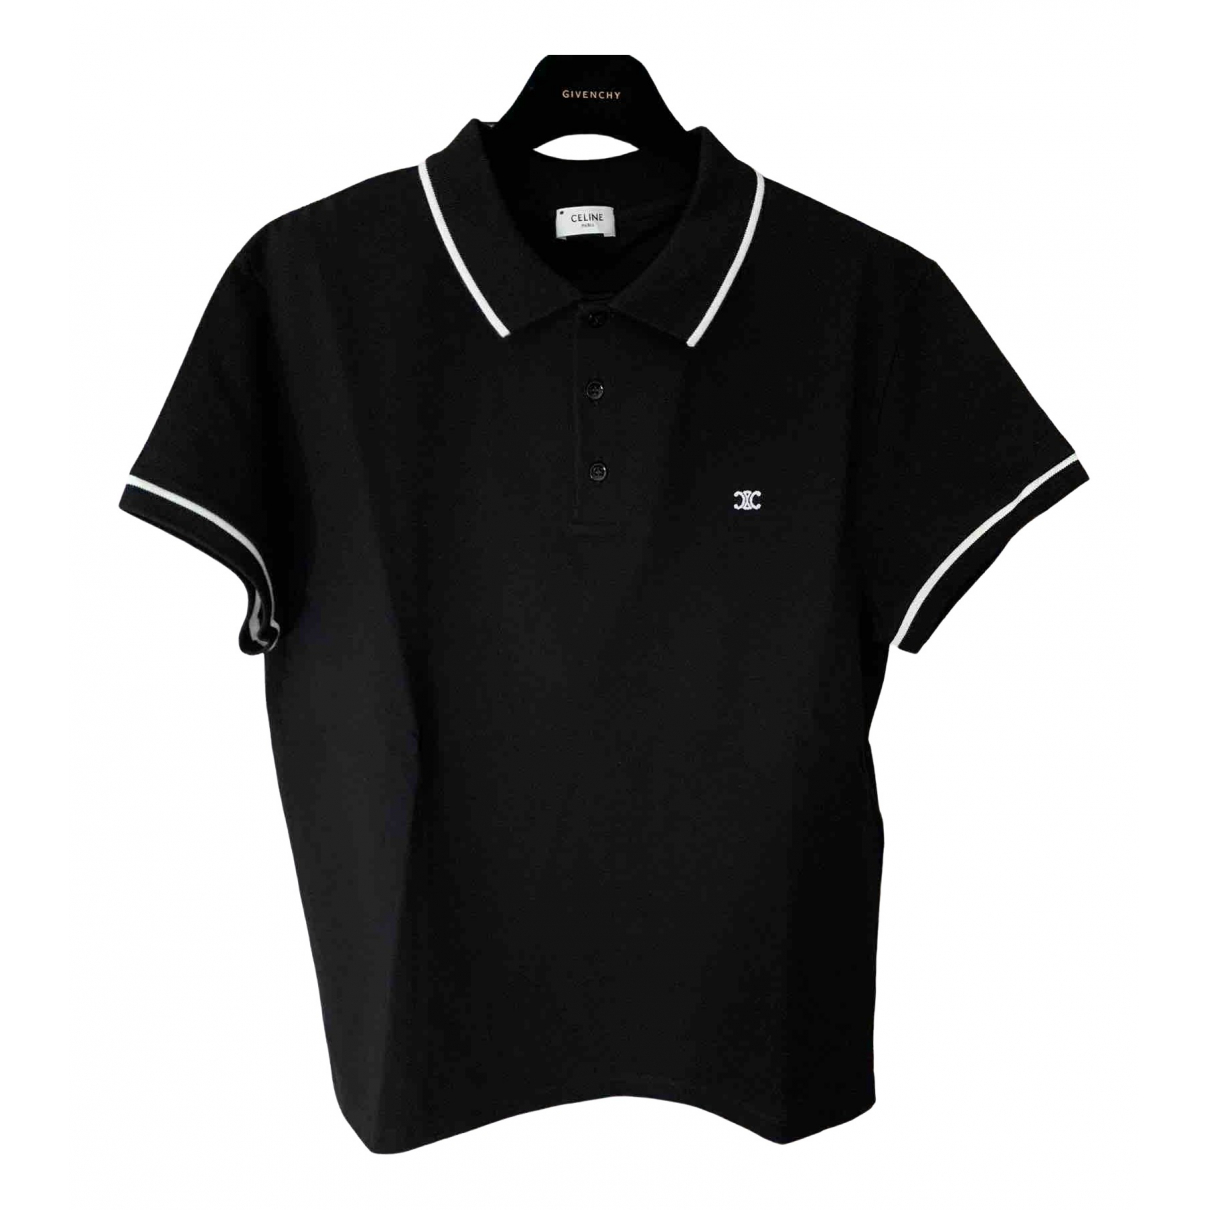 Celine \N Black Cotton Polo shirts for Men XL International